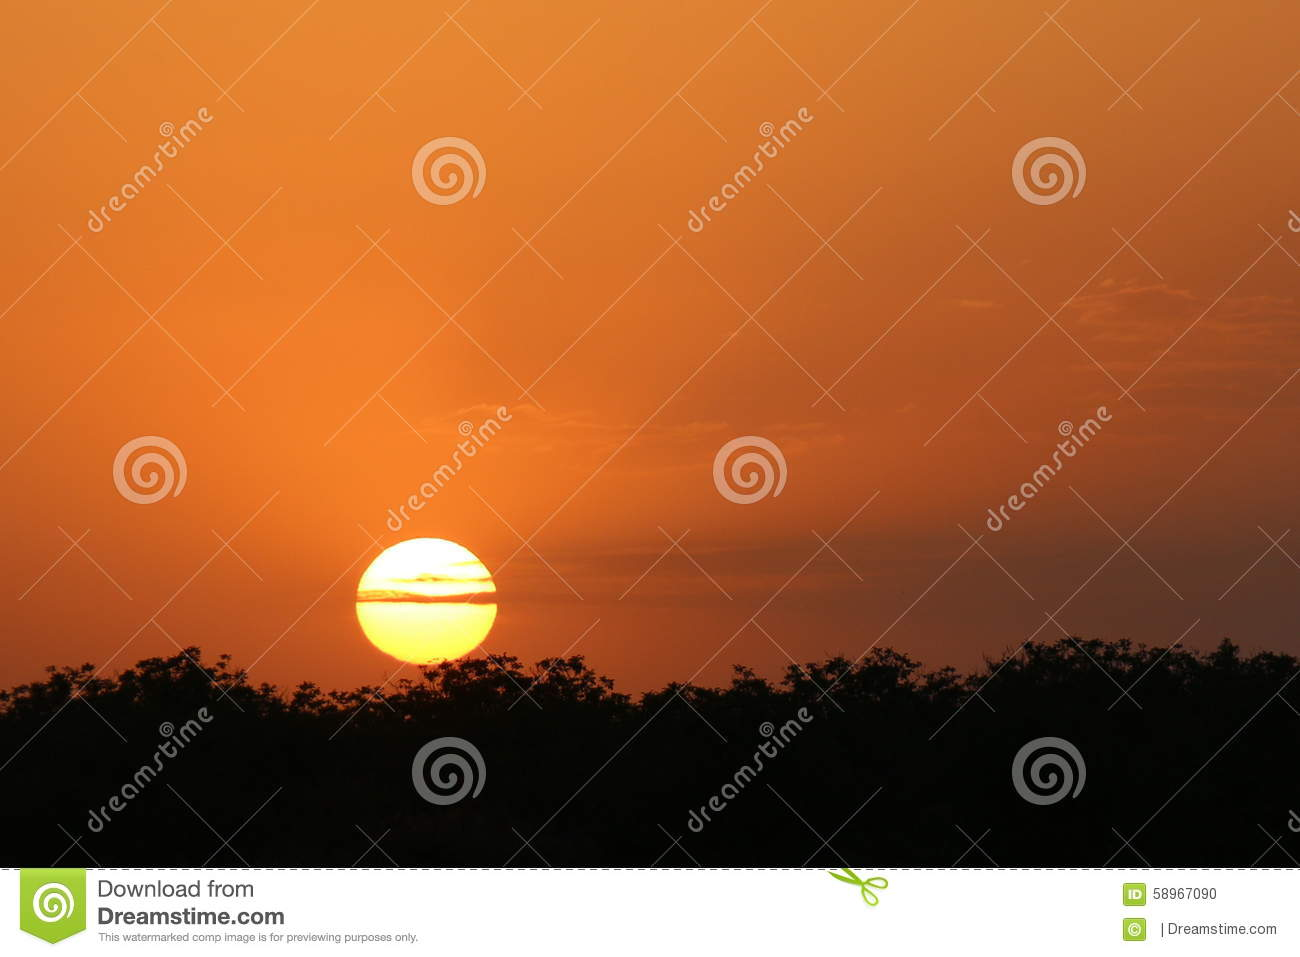 Coucher du soleil orange